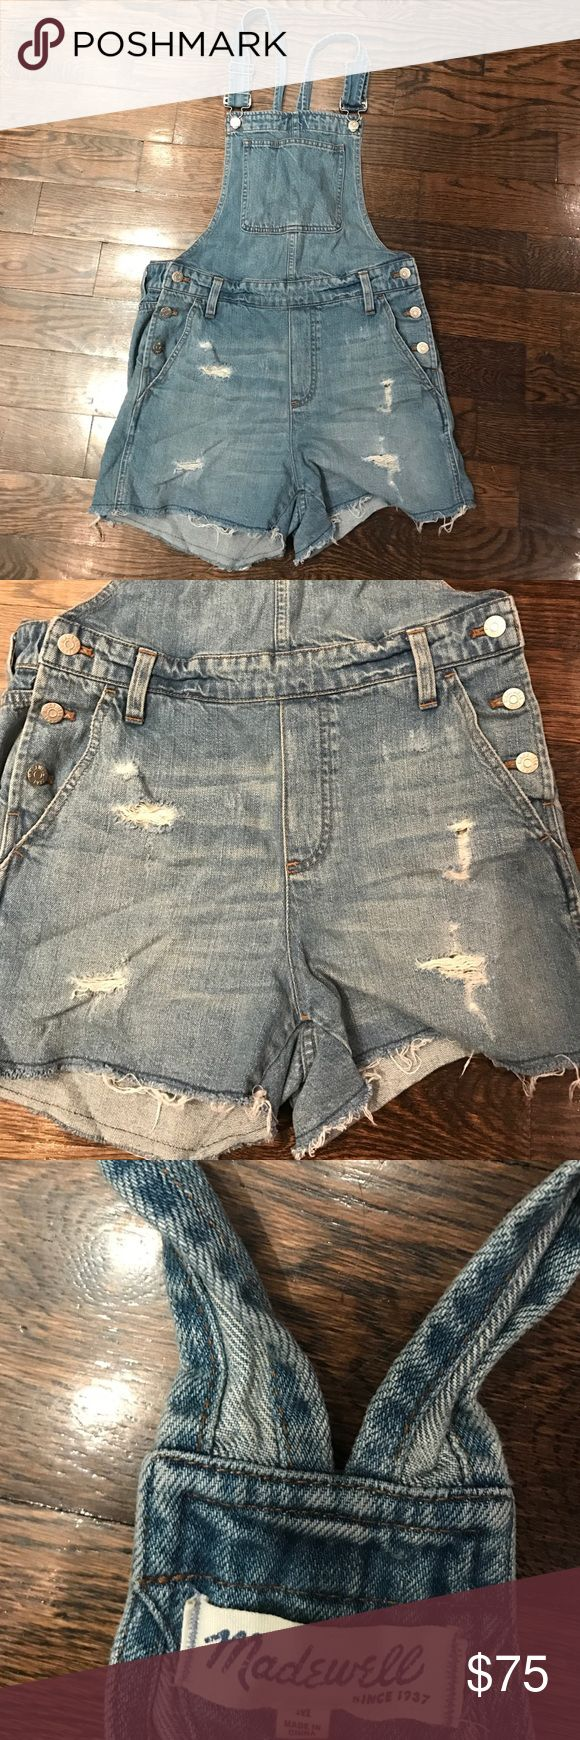 Madewell overalls Worn once Madewell Shorts